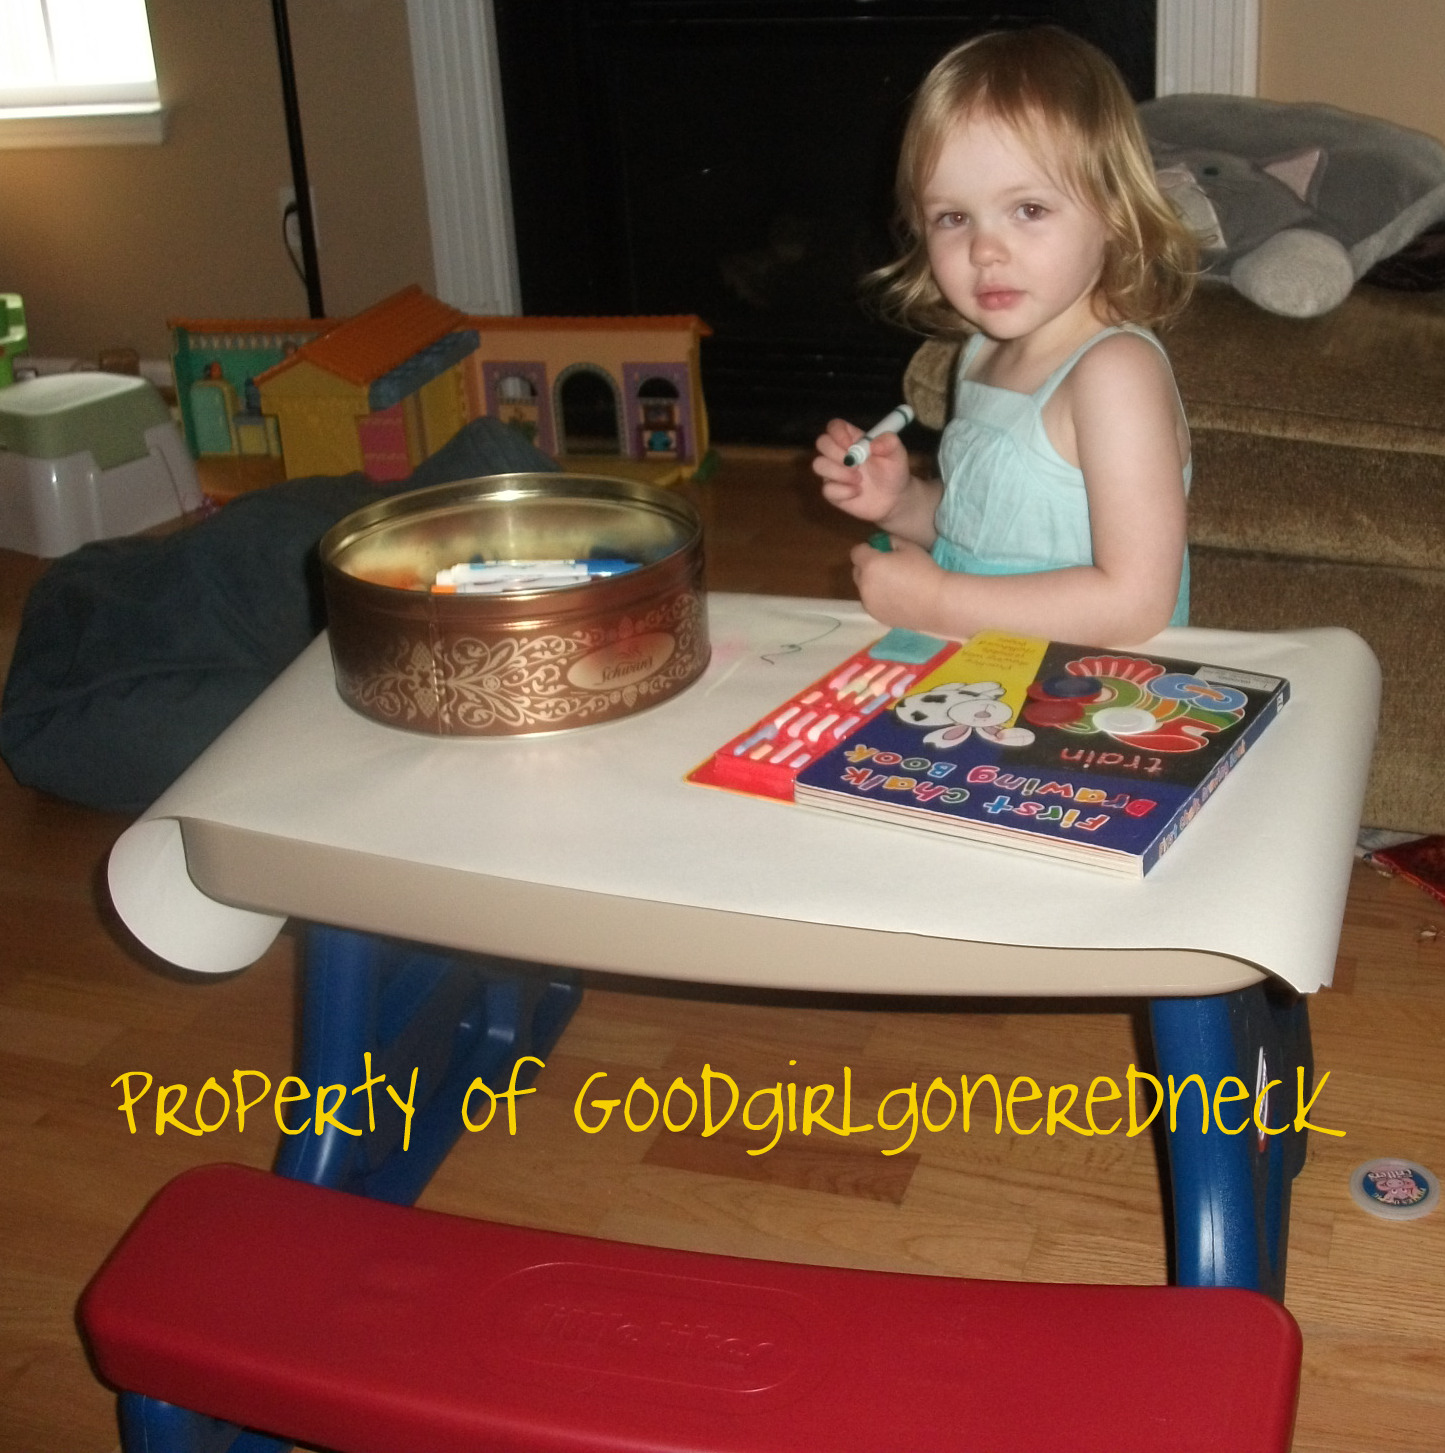 Good Girl Gone Redneck Review Little Tikes Picnic Table From CSN - 12 person picnic table